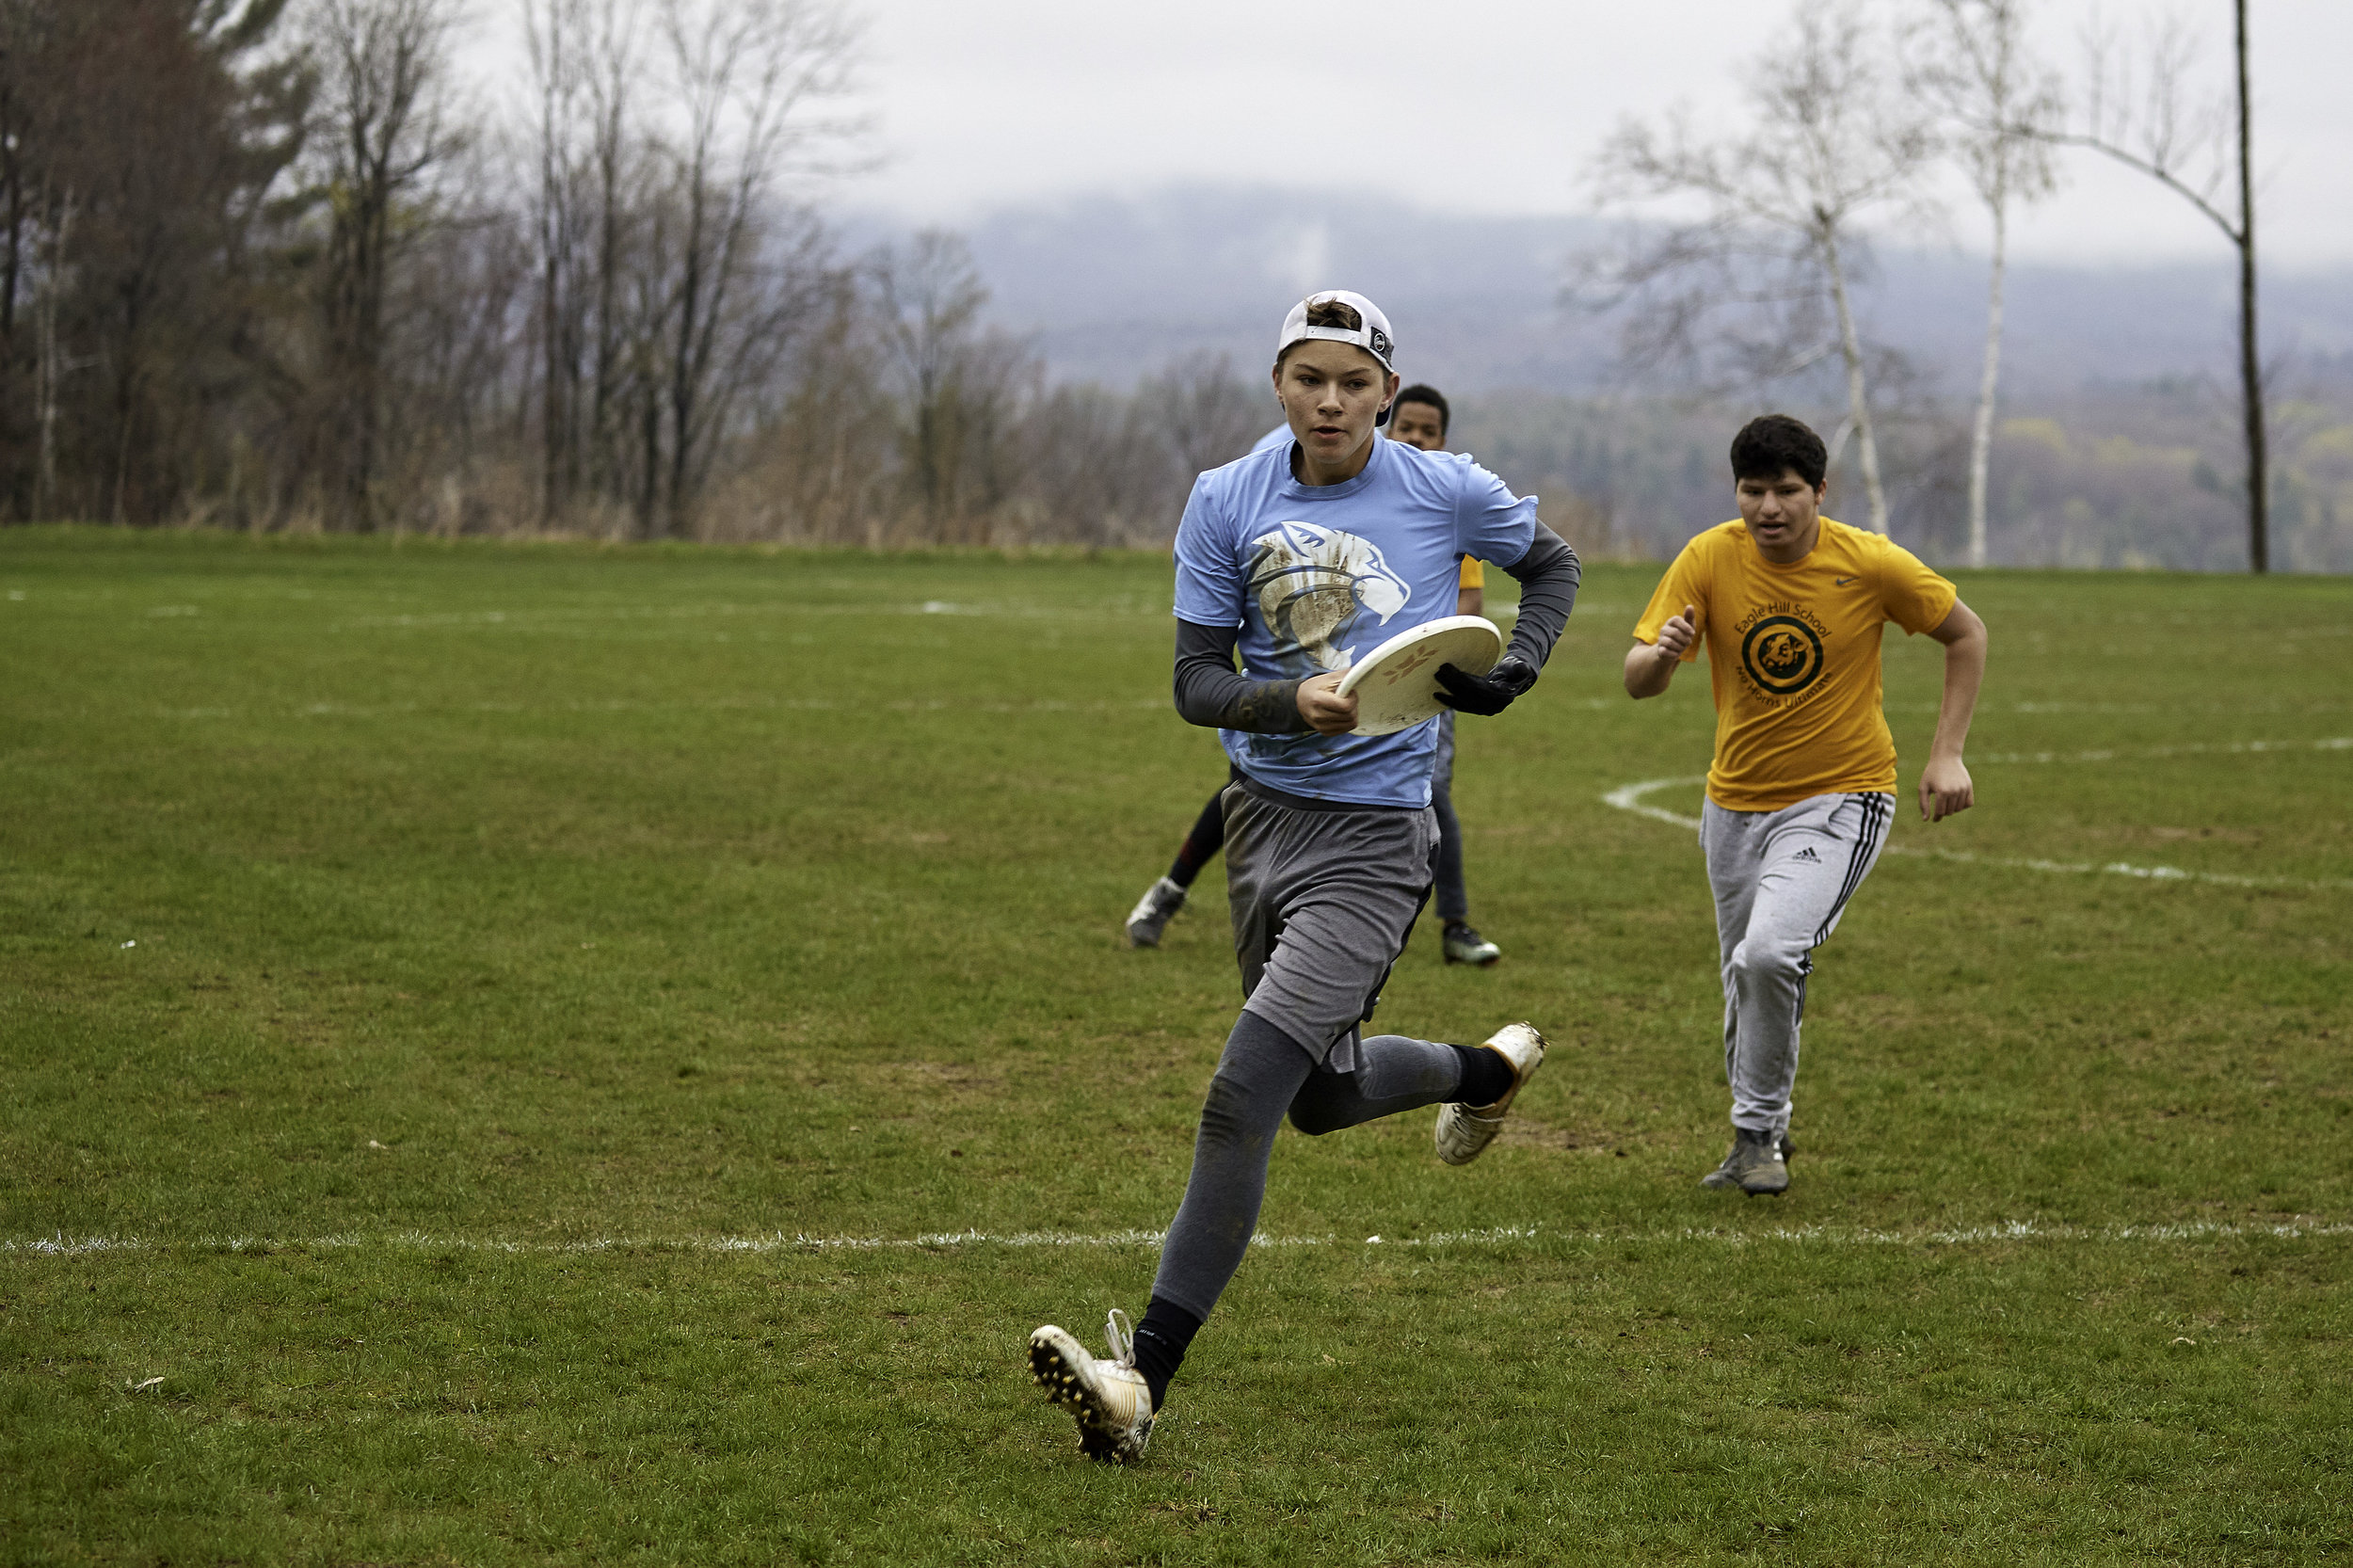 Ultimate Frisbee vs. Eagle Hill School - May 3, 2019 - 188383.jpg